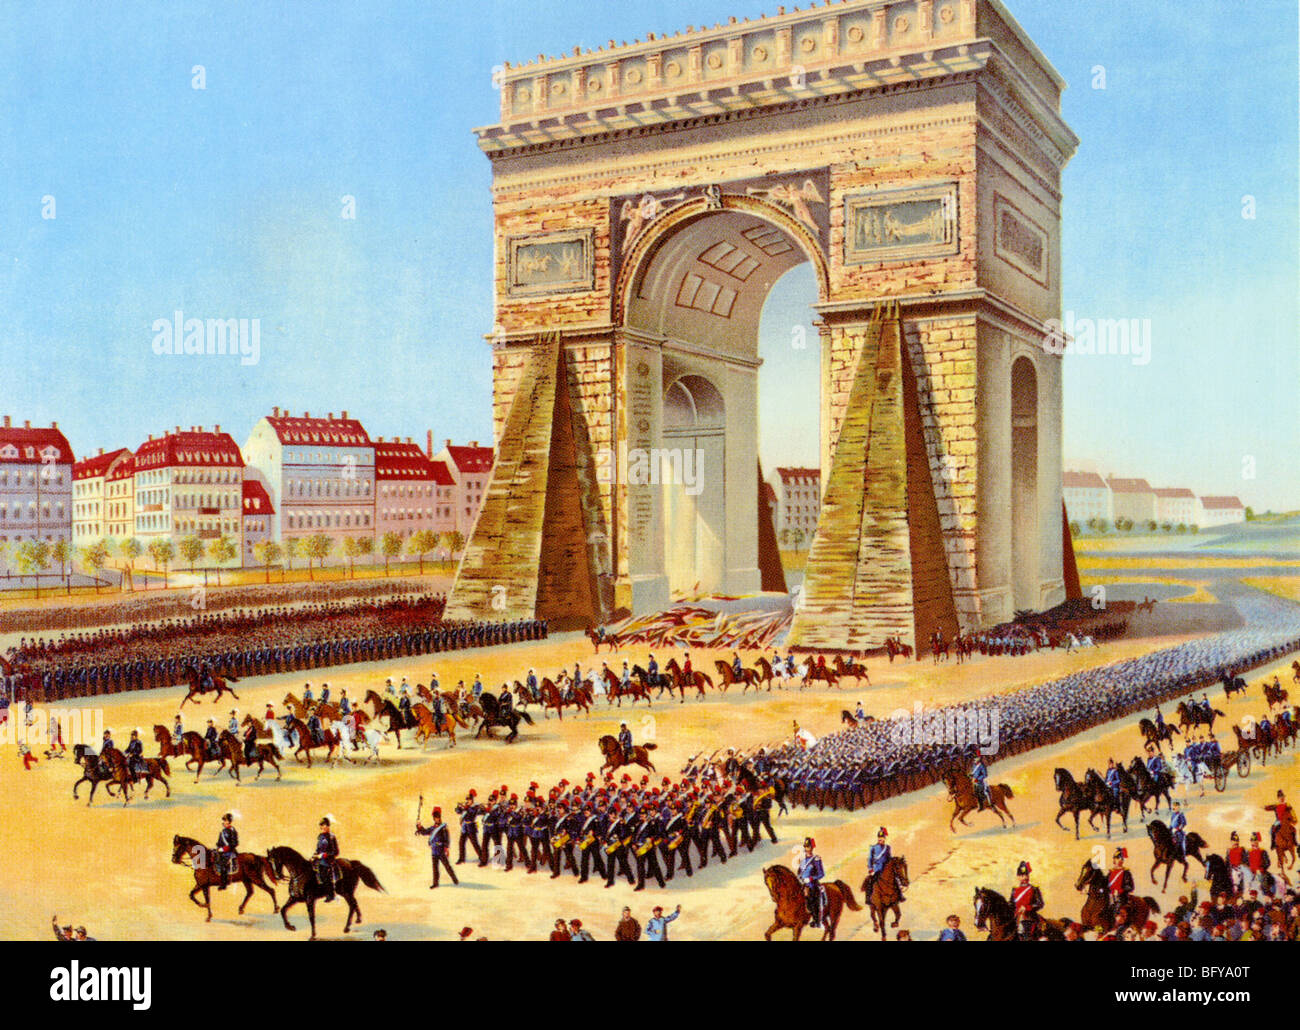 FRANCO-PRUSSIAN WAR - Victorious German troops march past the Arc de Triumph in Paris on 28 January 1871 - Stock Image